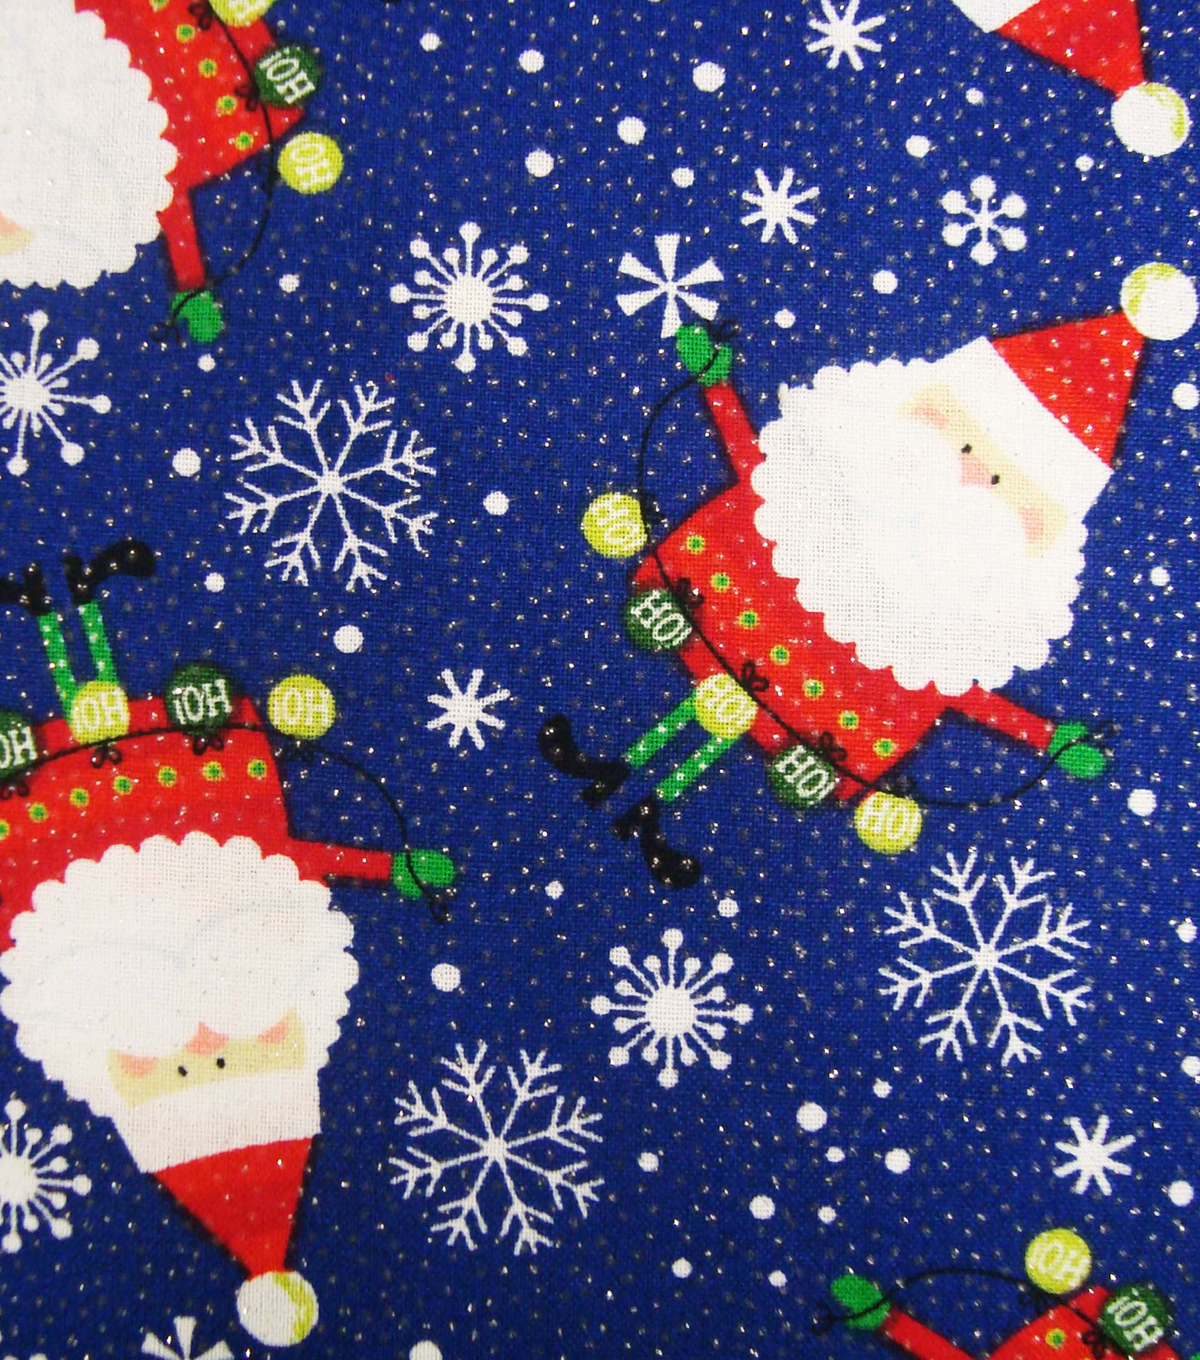 Keepsake Calico Holiday Cotton Fabric 43\u0022-Santa and Ornaments